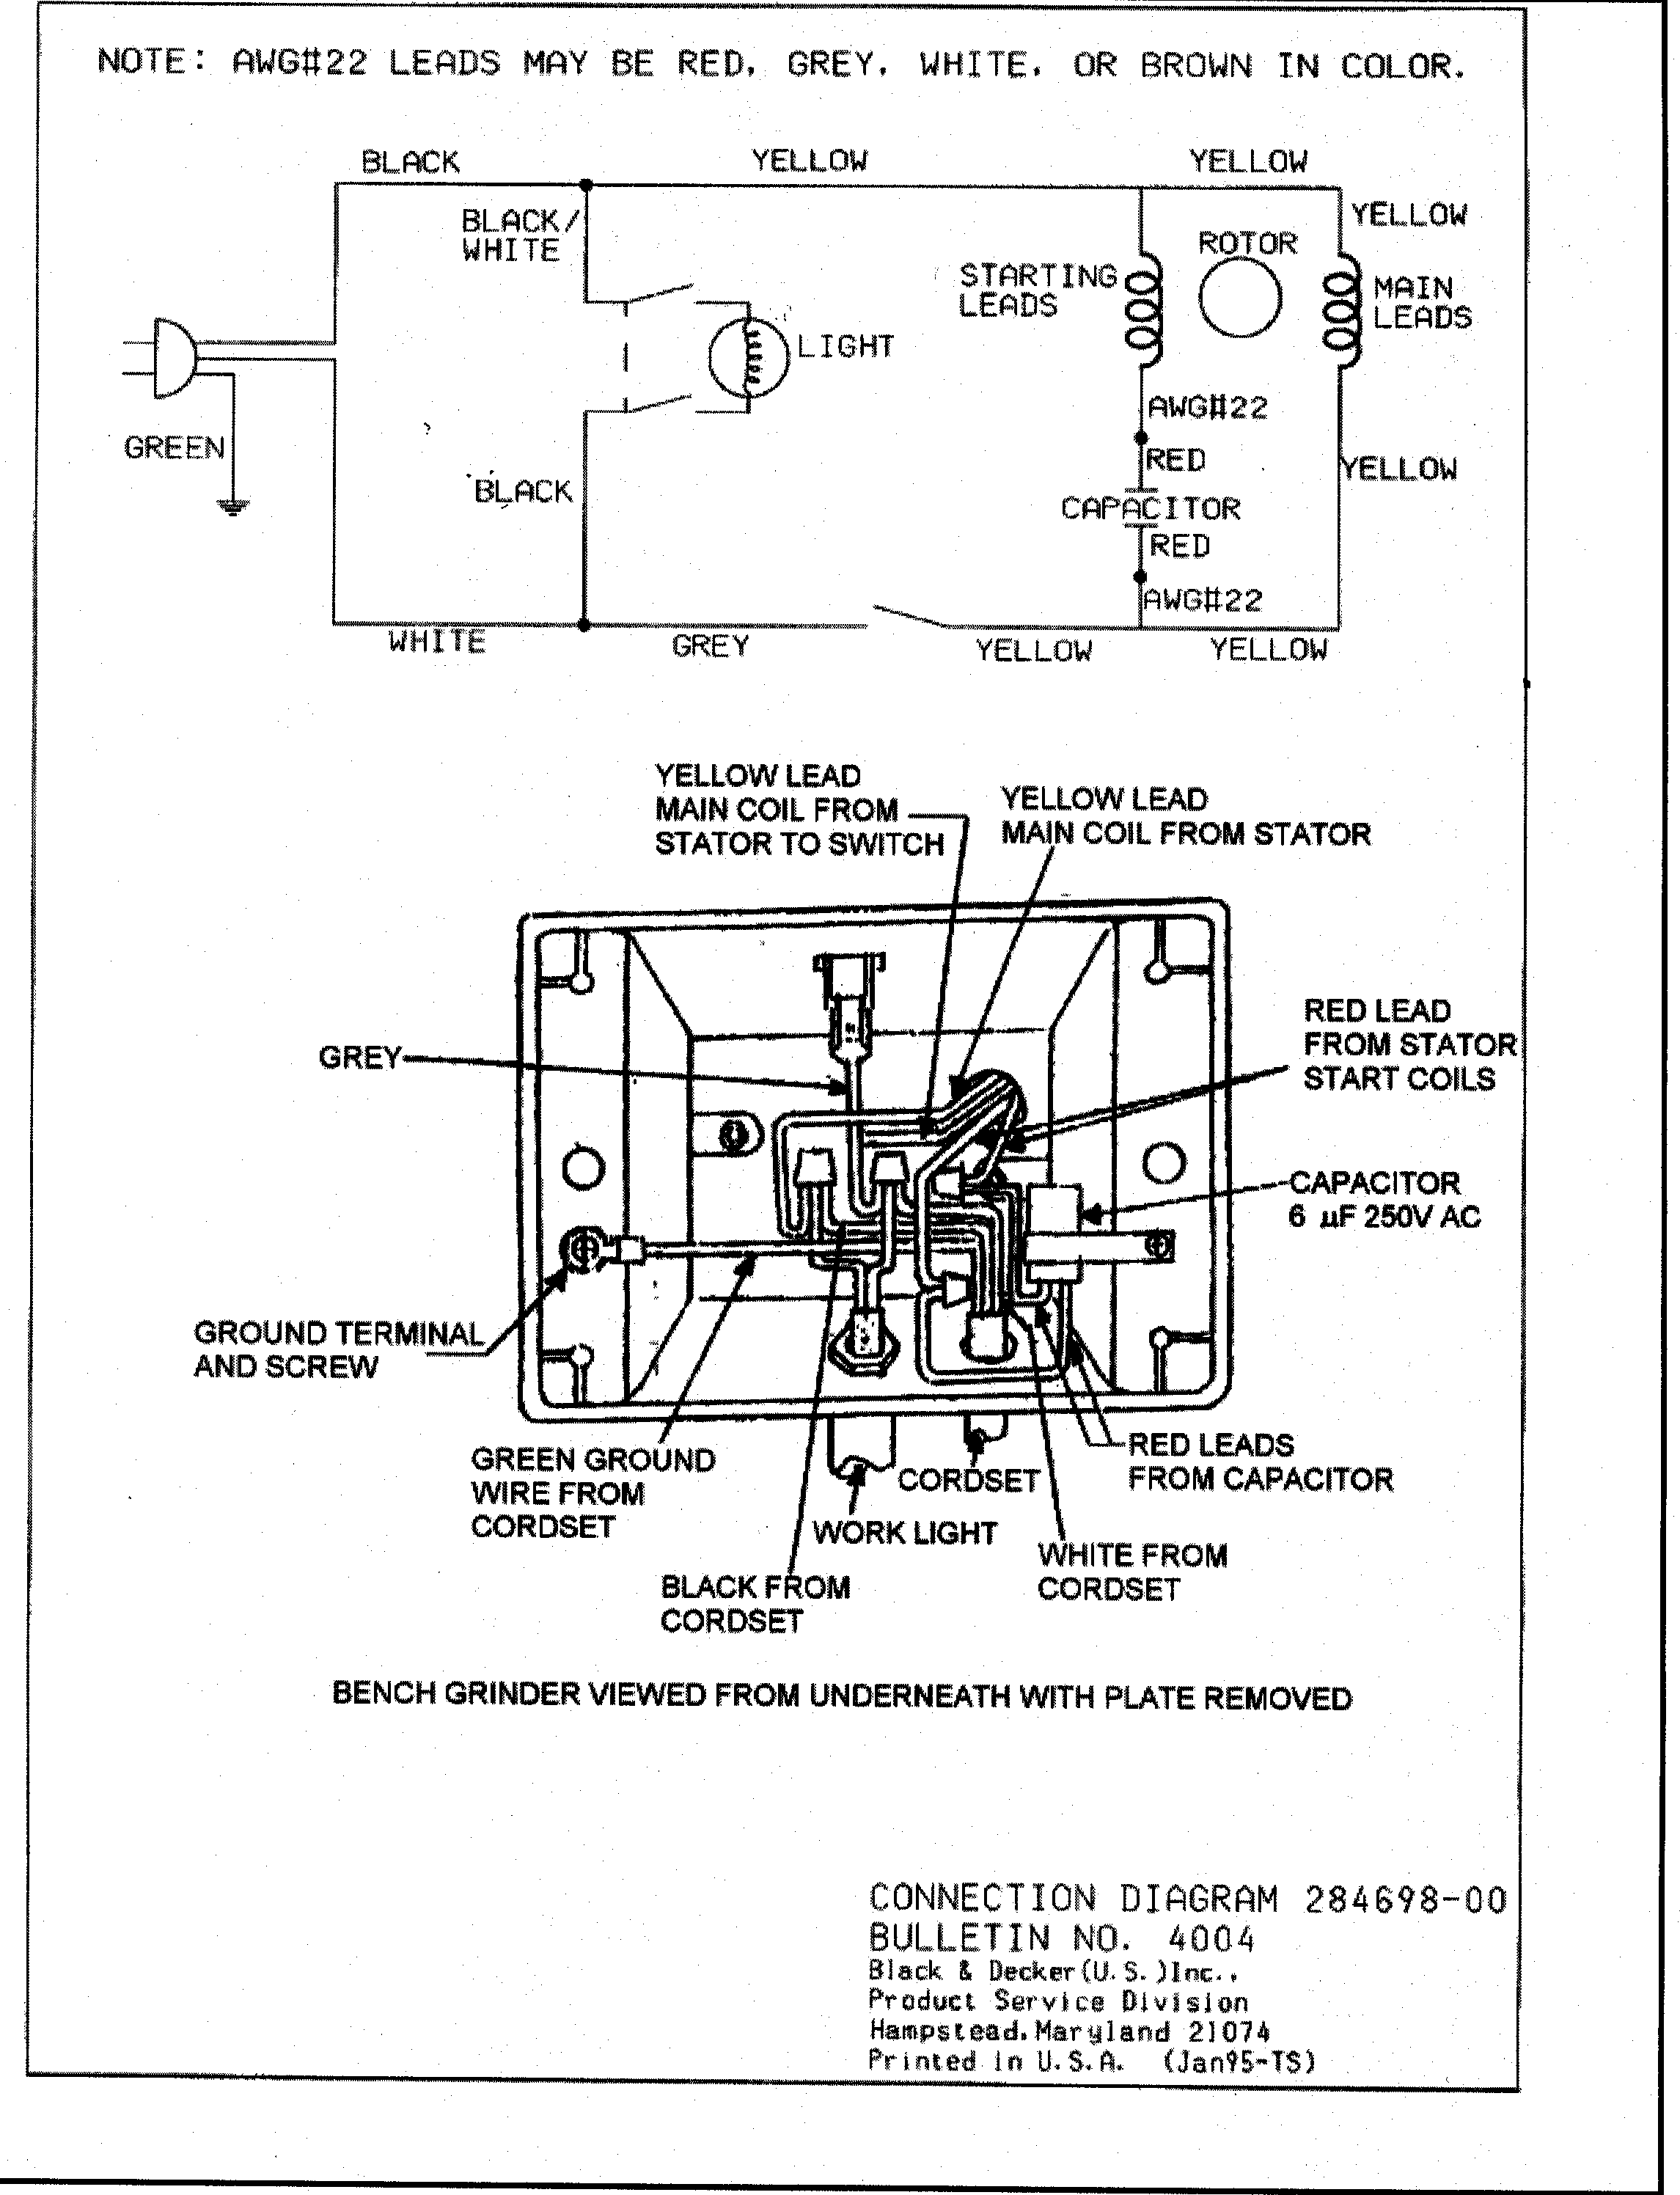 Omc Throttle Control Box Wiring Diagram likewise pressor Wiring Diagram 3 Phase also Chassis likewise Single Phase Motor Wiring Diagram Requirement Is To A Single L  To Be Switched By Multiple Pir Sensors For That Matter Multiple L s To Be Switched moreover Bench Grinder Wiring Diagram. on motor connections diagrams